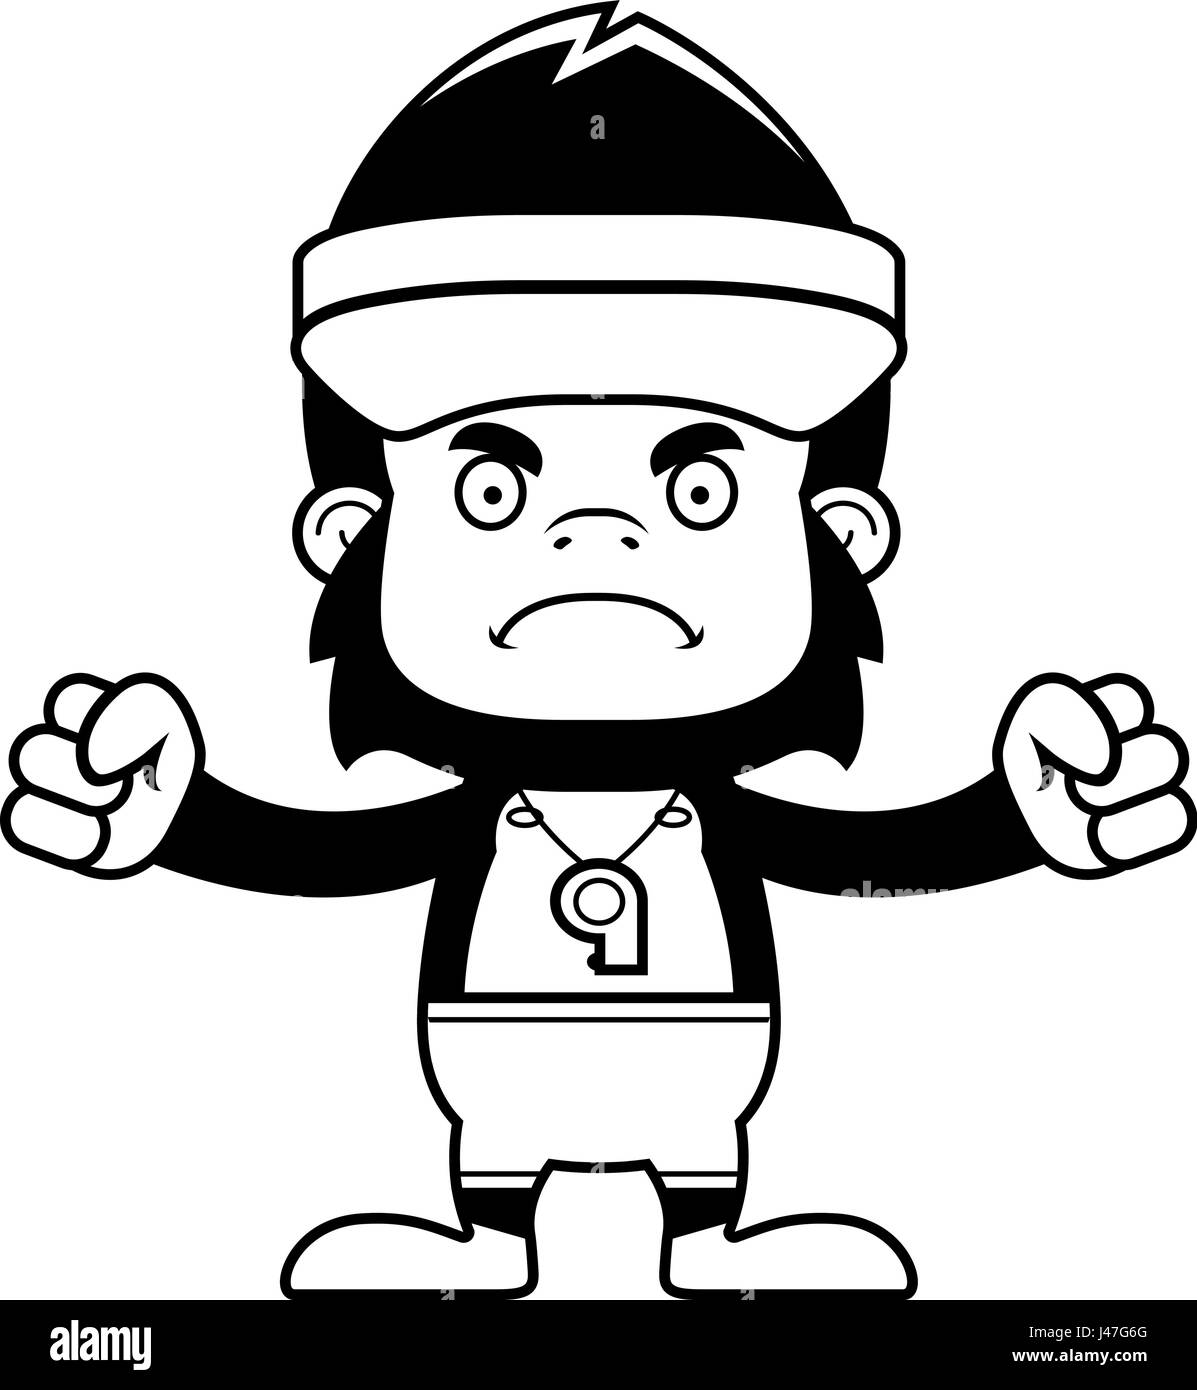 cartoon whistle black and white stock photos images page 3 alamy Angry Emoji Clip Art a cartoon lifeguard gorilla looking angry stock image